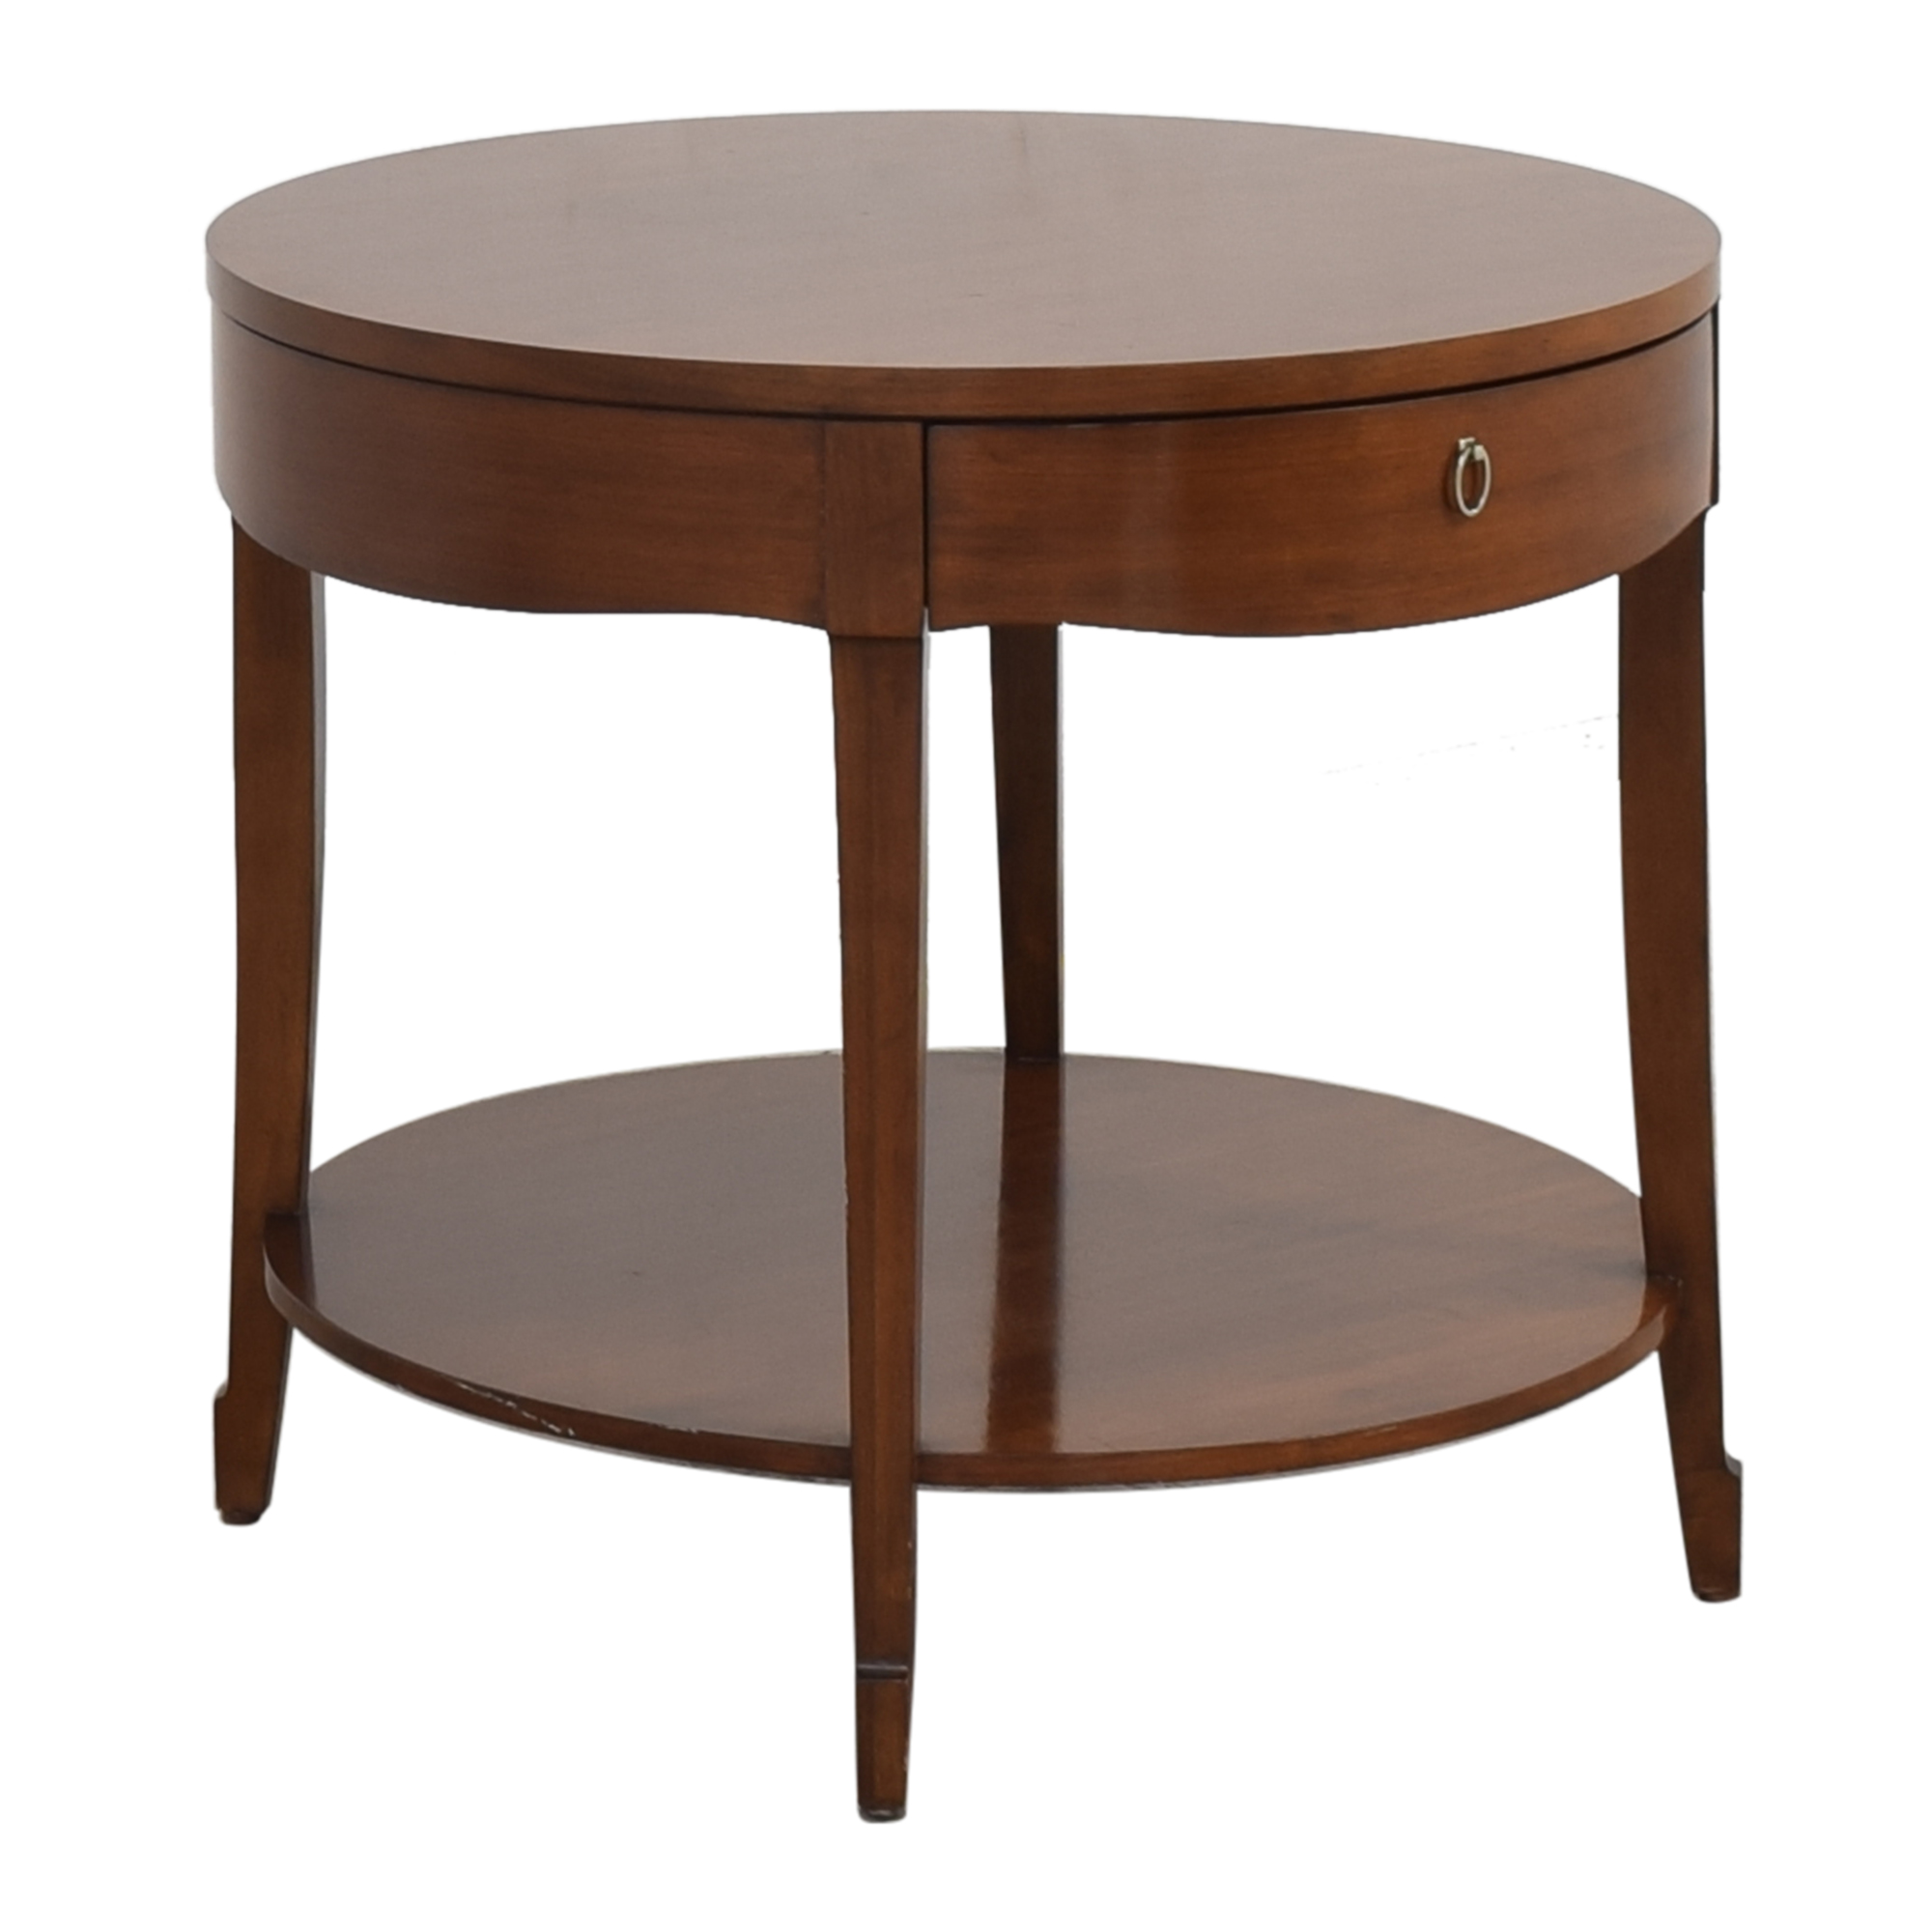 Henredon Furniture Round End Table with Drawer sale